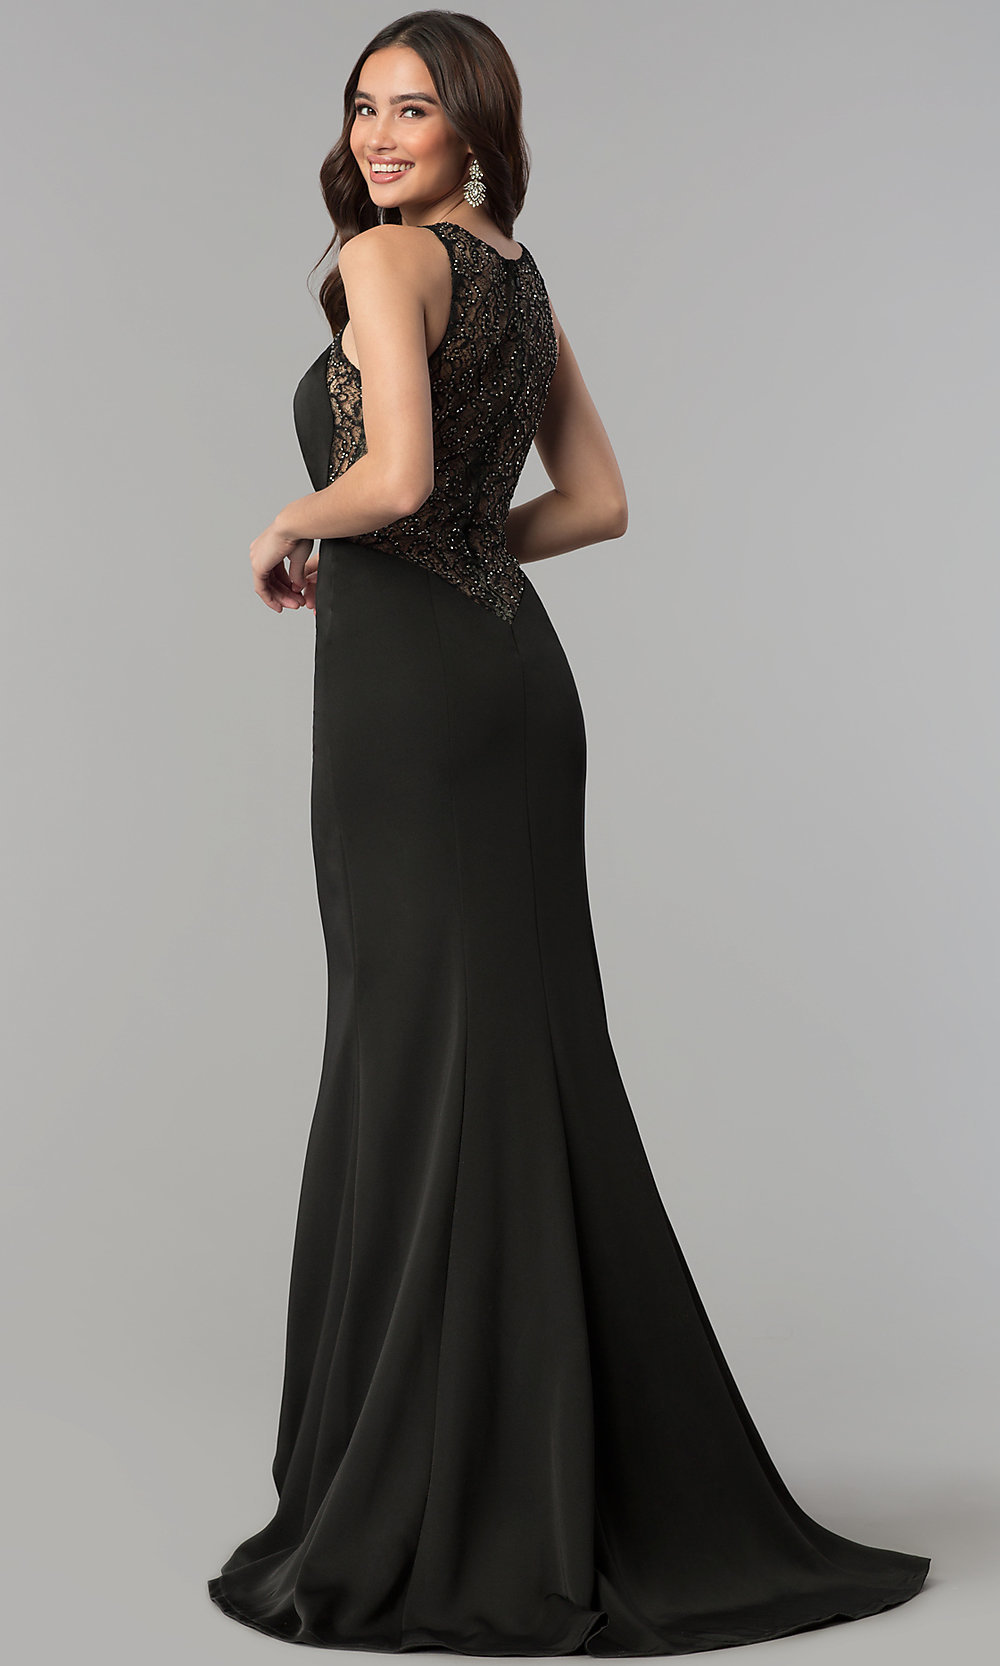 Tap to expand · Image of sheer-lace-back long prom dress. e8f72dd2a